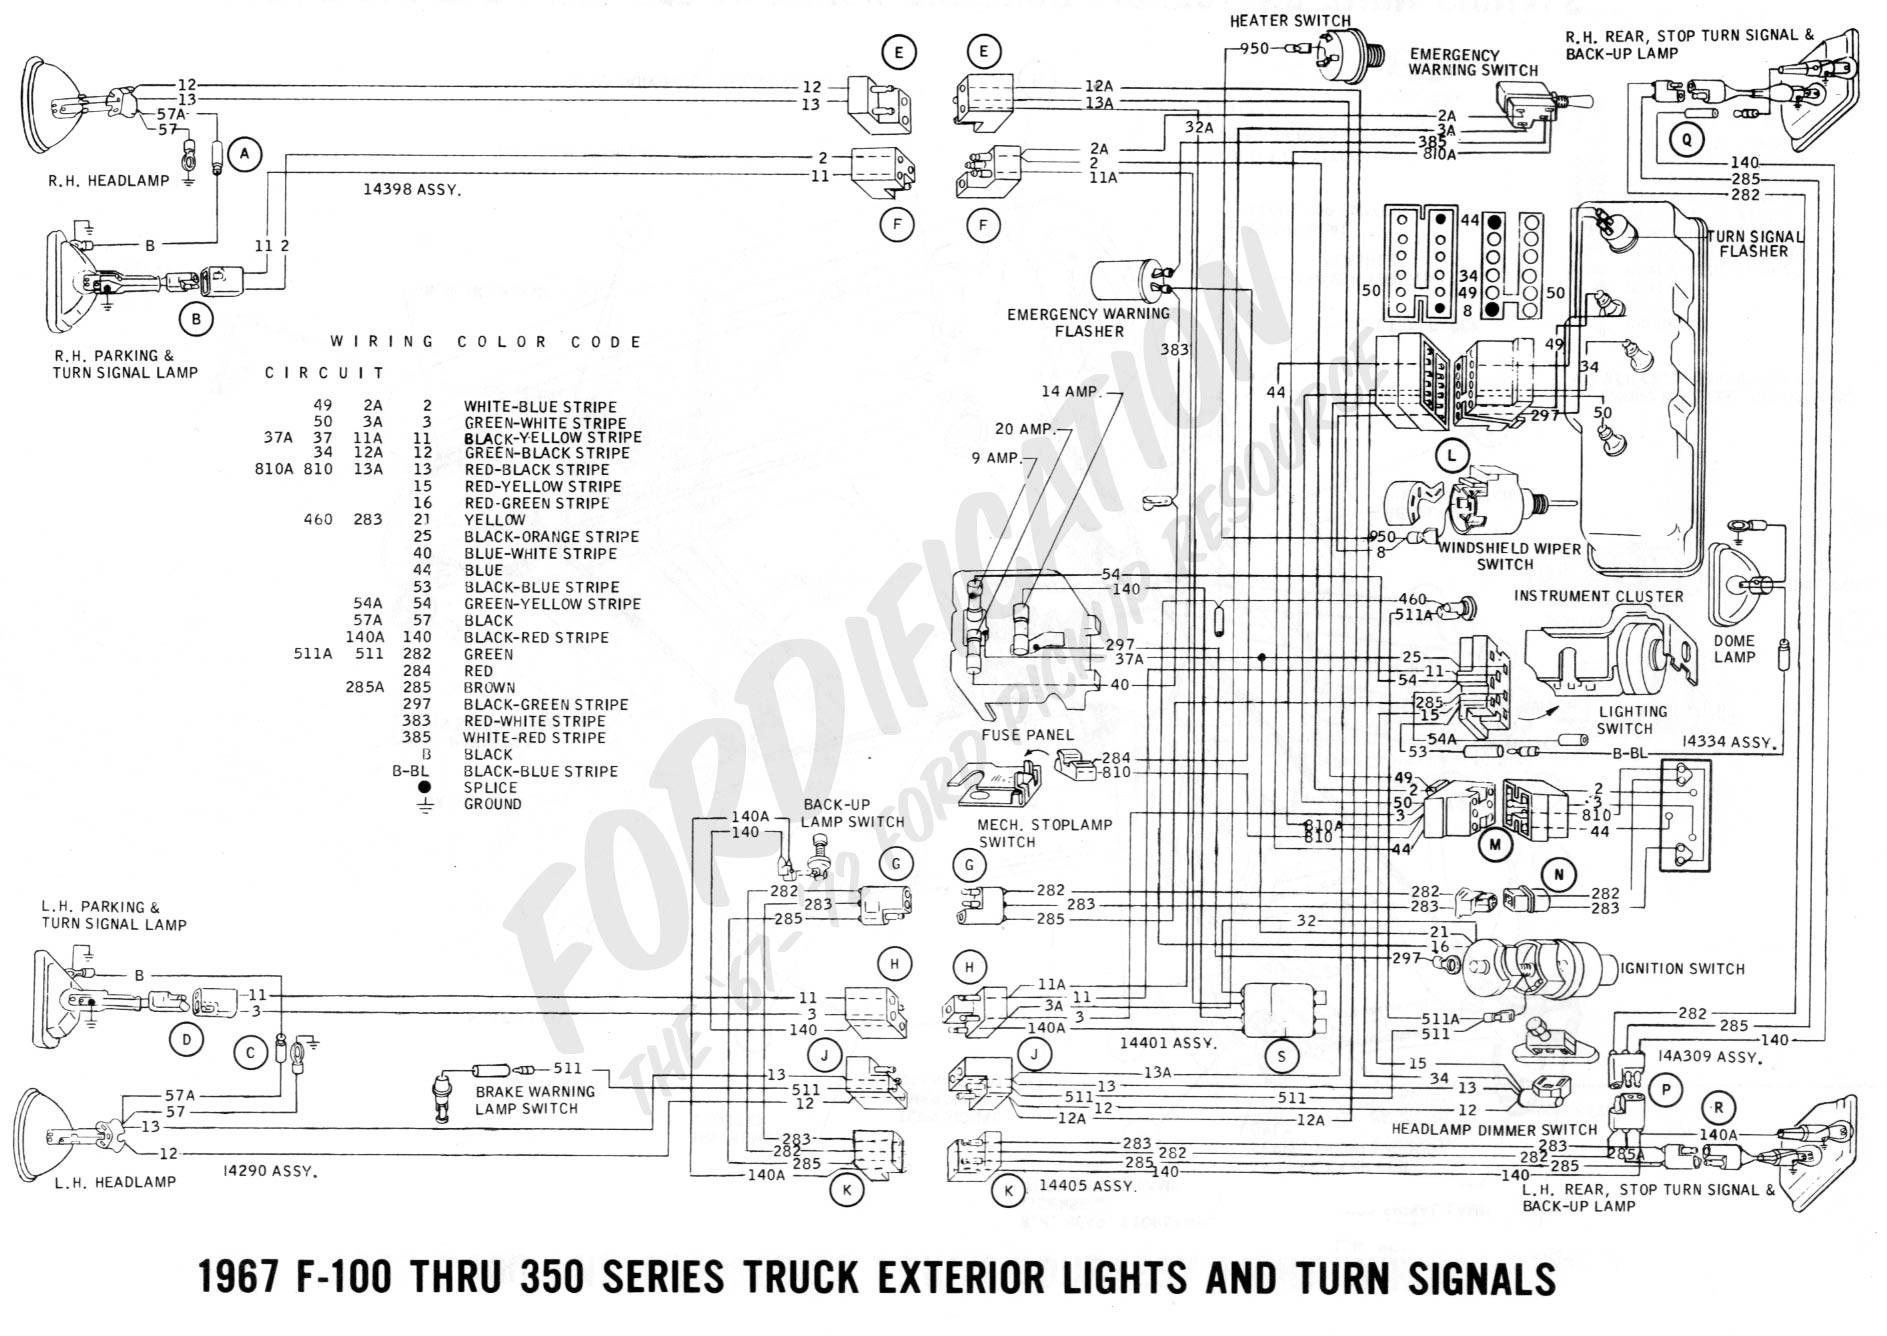 1956 Opel Wiring Diagram 2002 Chevy Tahoe Tail Light Wiring Harness For Wiring Diagram Schematics